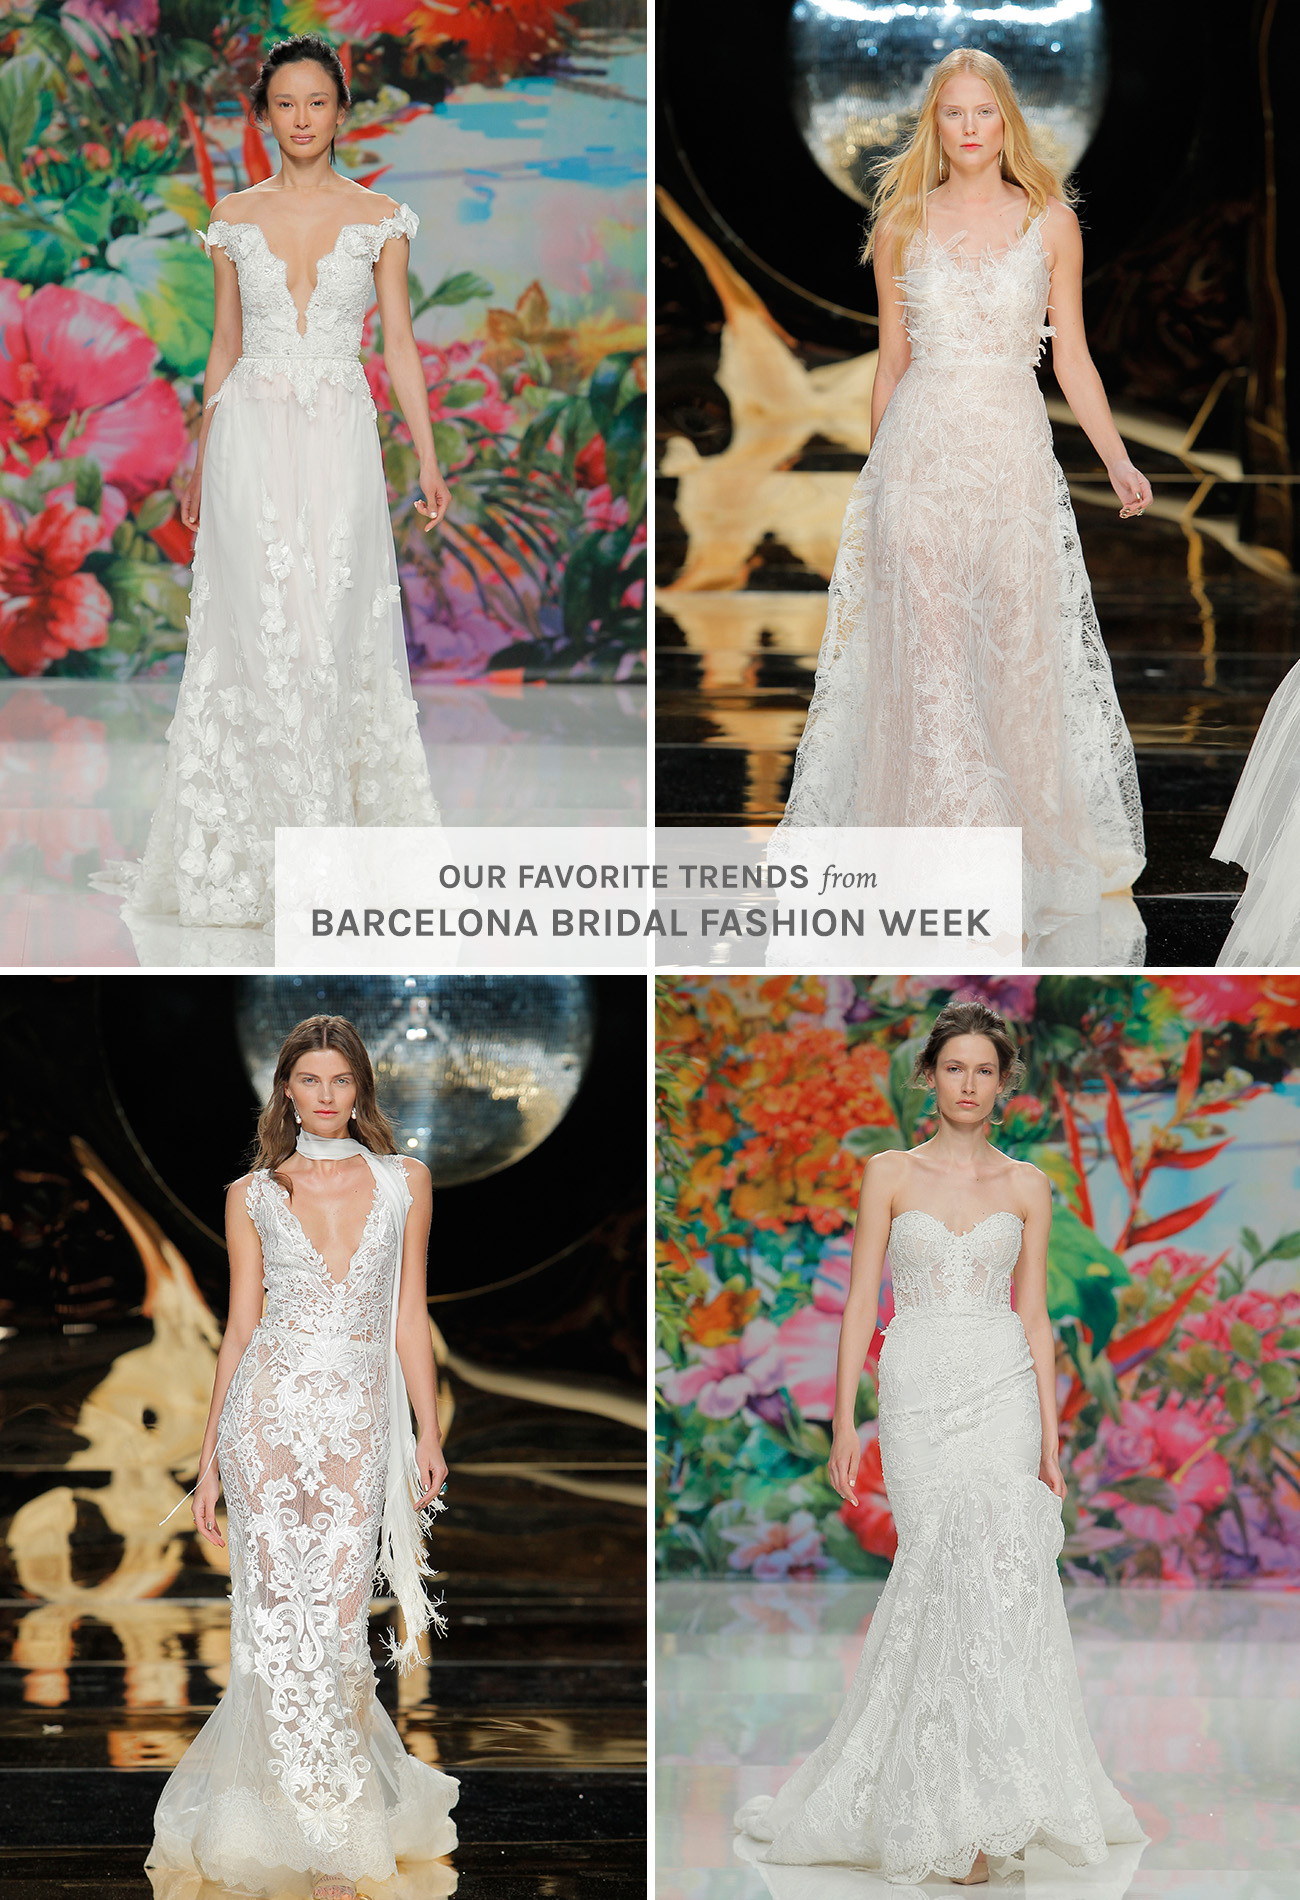 Our Favorite Trends from Barcelona Bridal Fashion Week